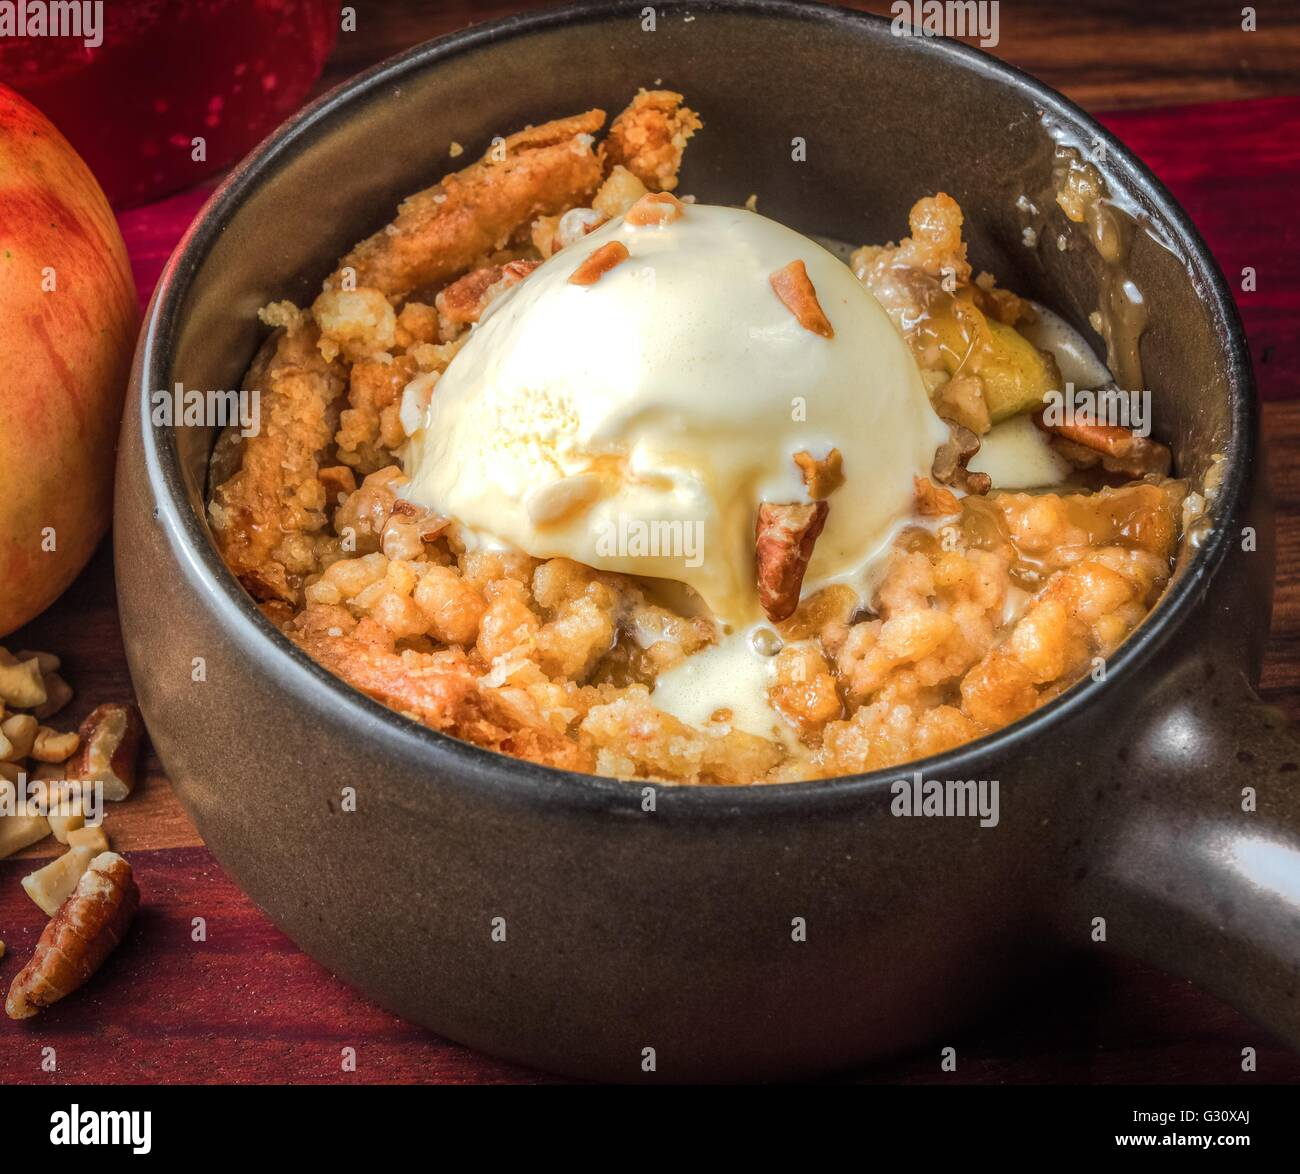 Freshly baked apple crisp a la mode with a walnut topping. A delicious seasonal dessert. - Stock Image